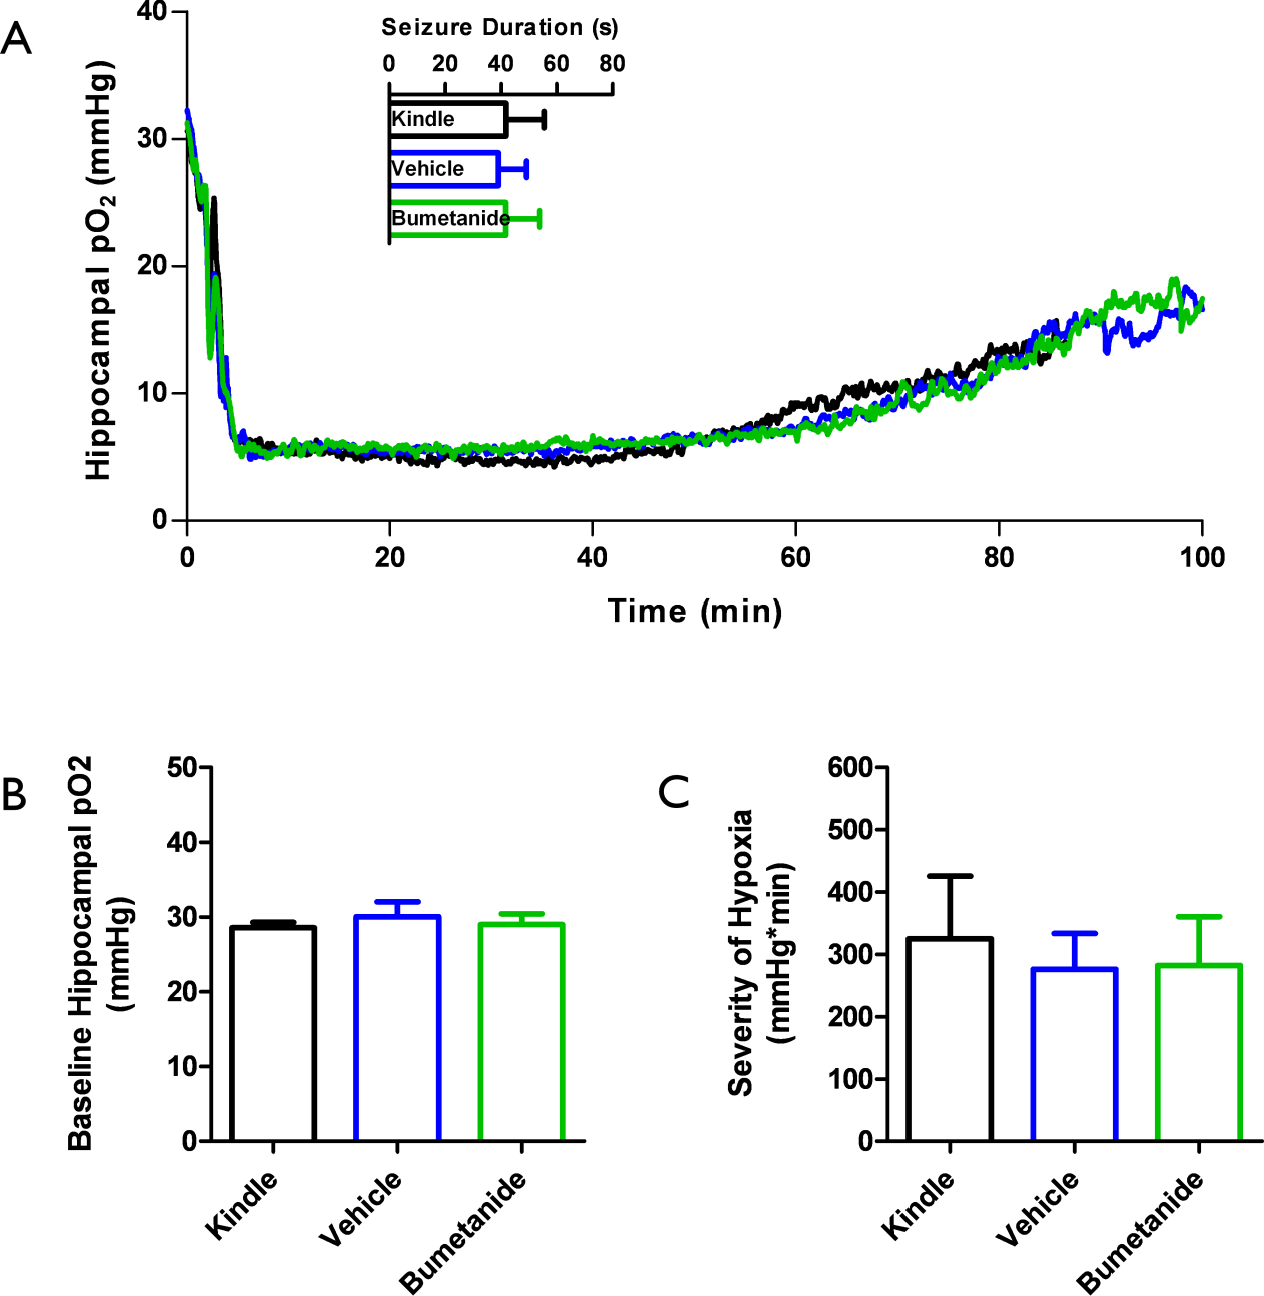 Figure 4-9: Lack of changes in SISHE severity and seizure durations post-bumetanide